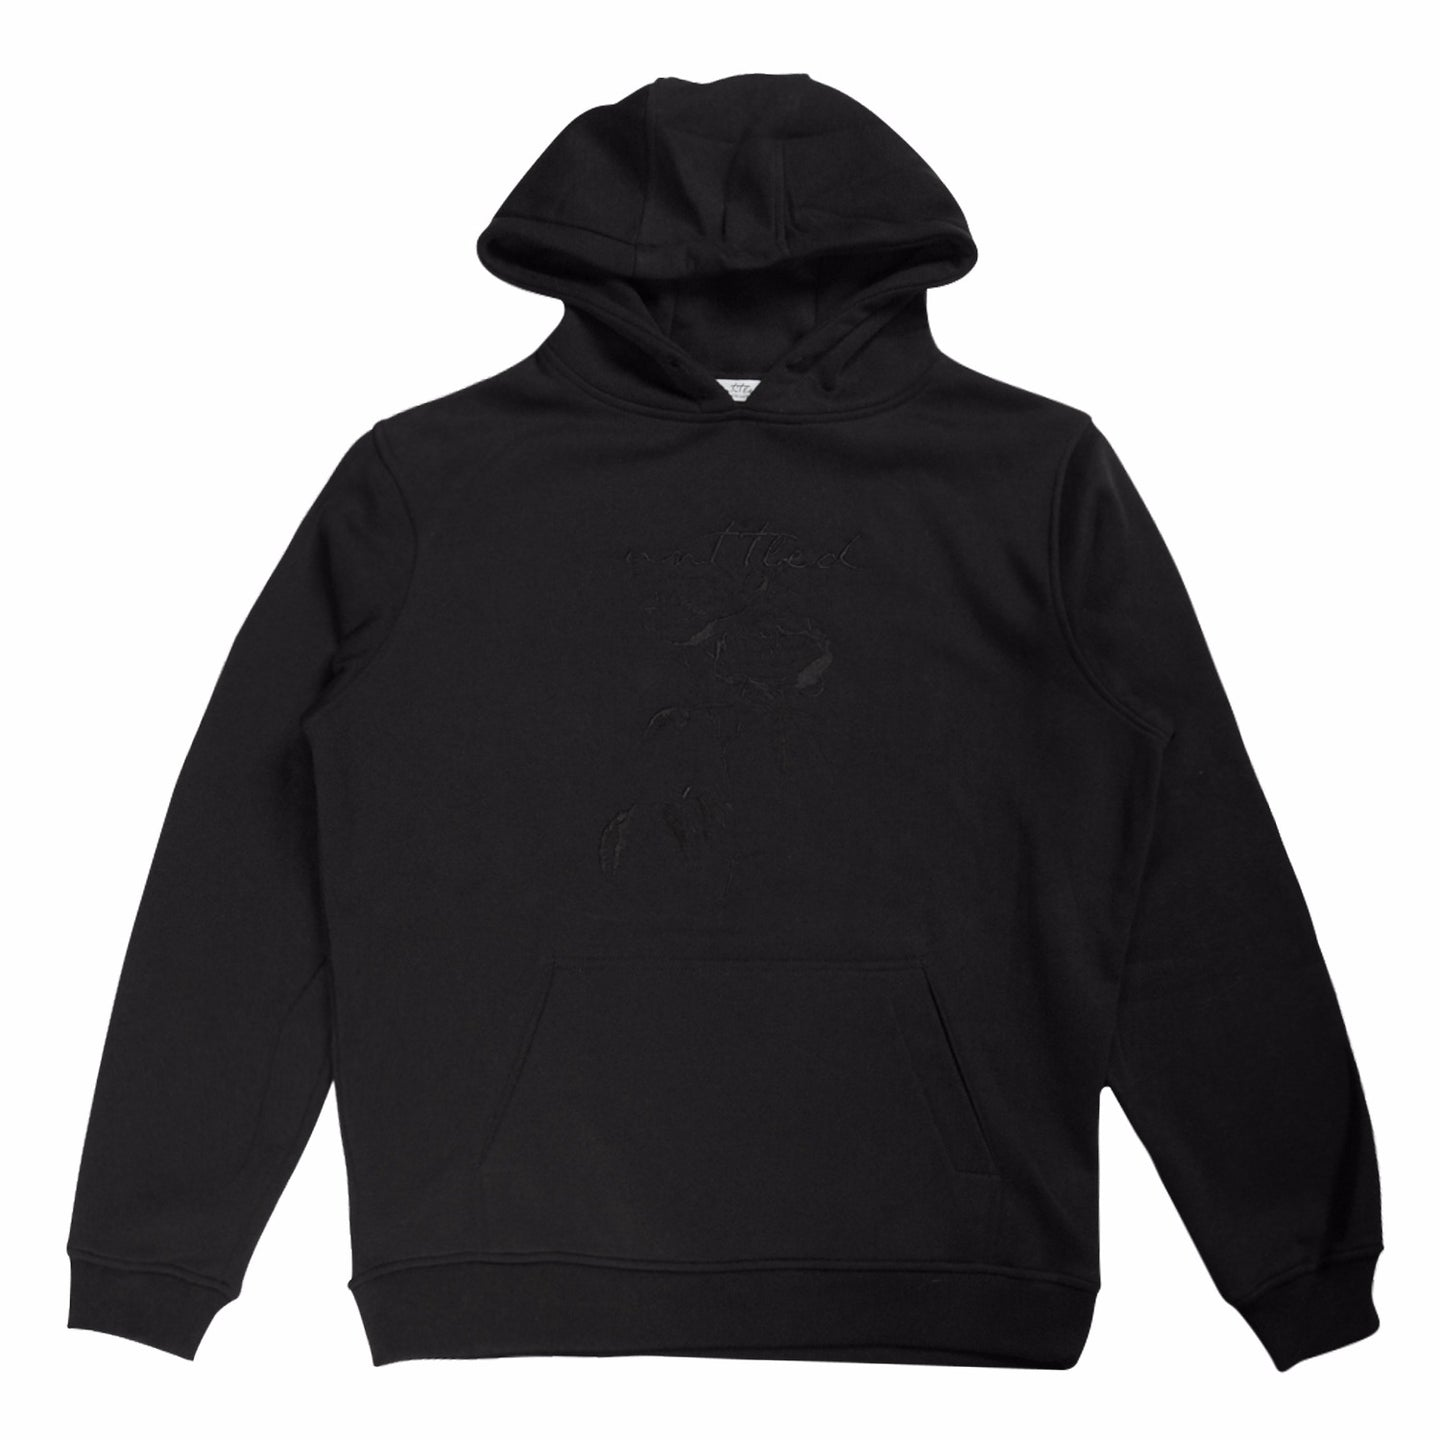 Black Untitled Atelier Embroidered Rose Hoodie